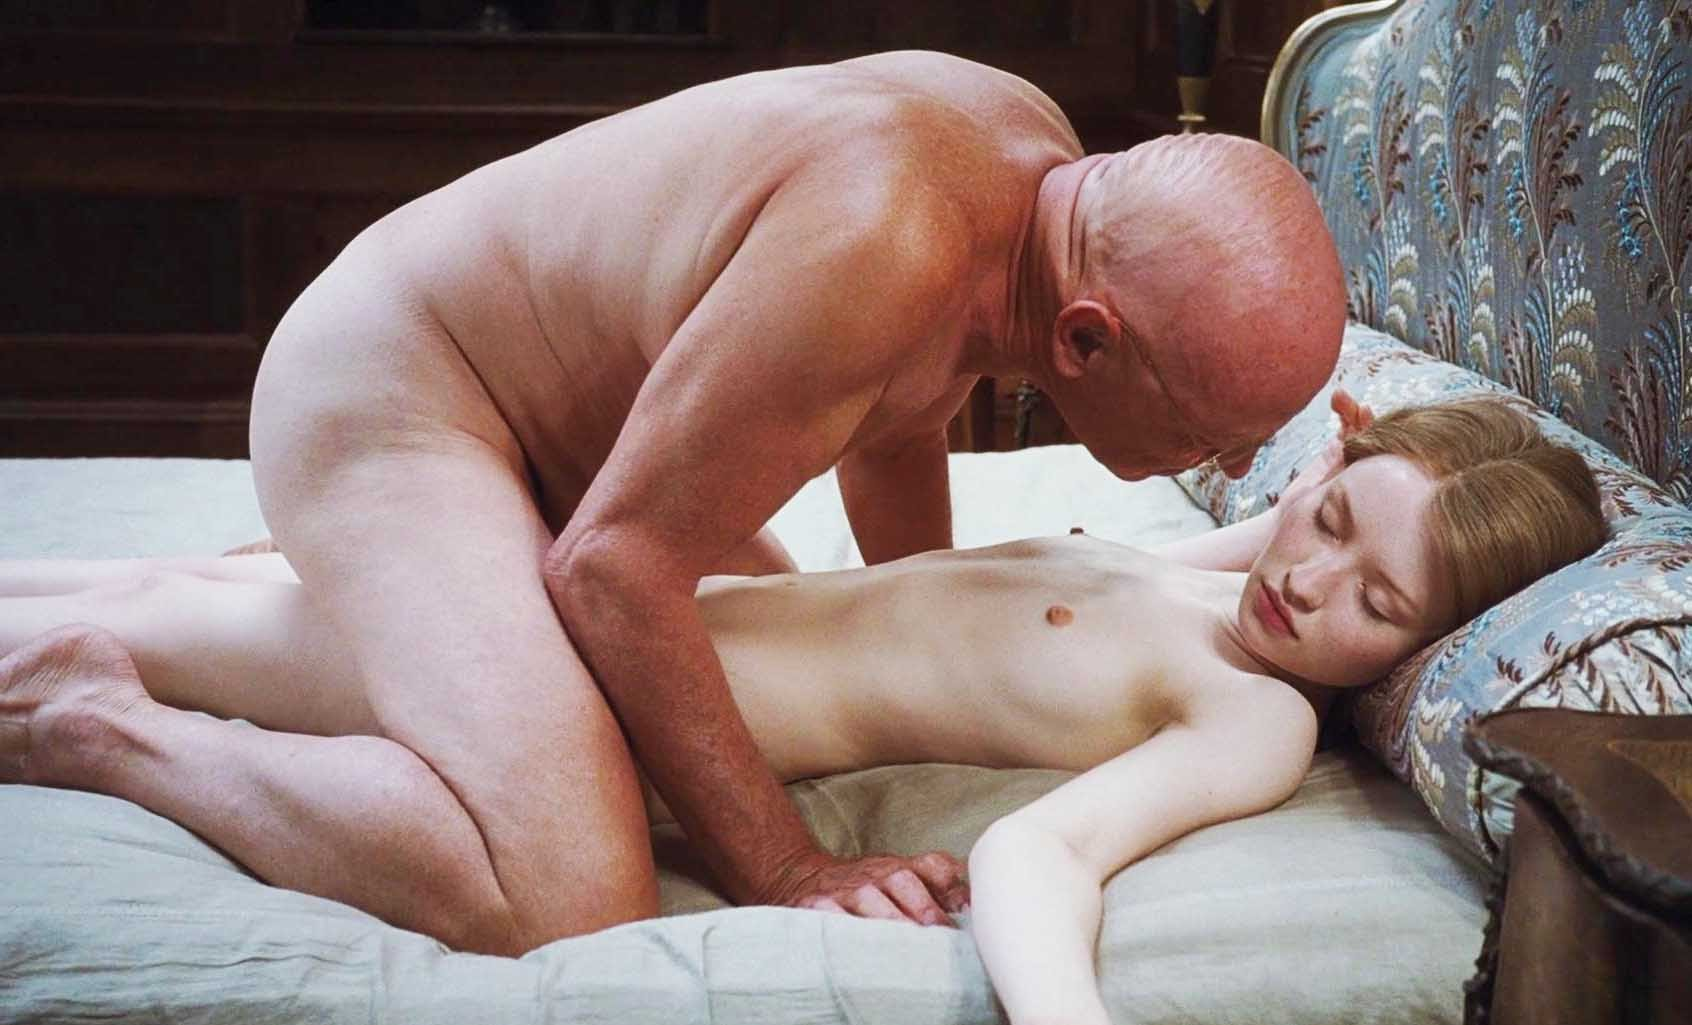 opinion free xxx moms wife watch will last drop. join